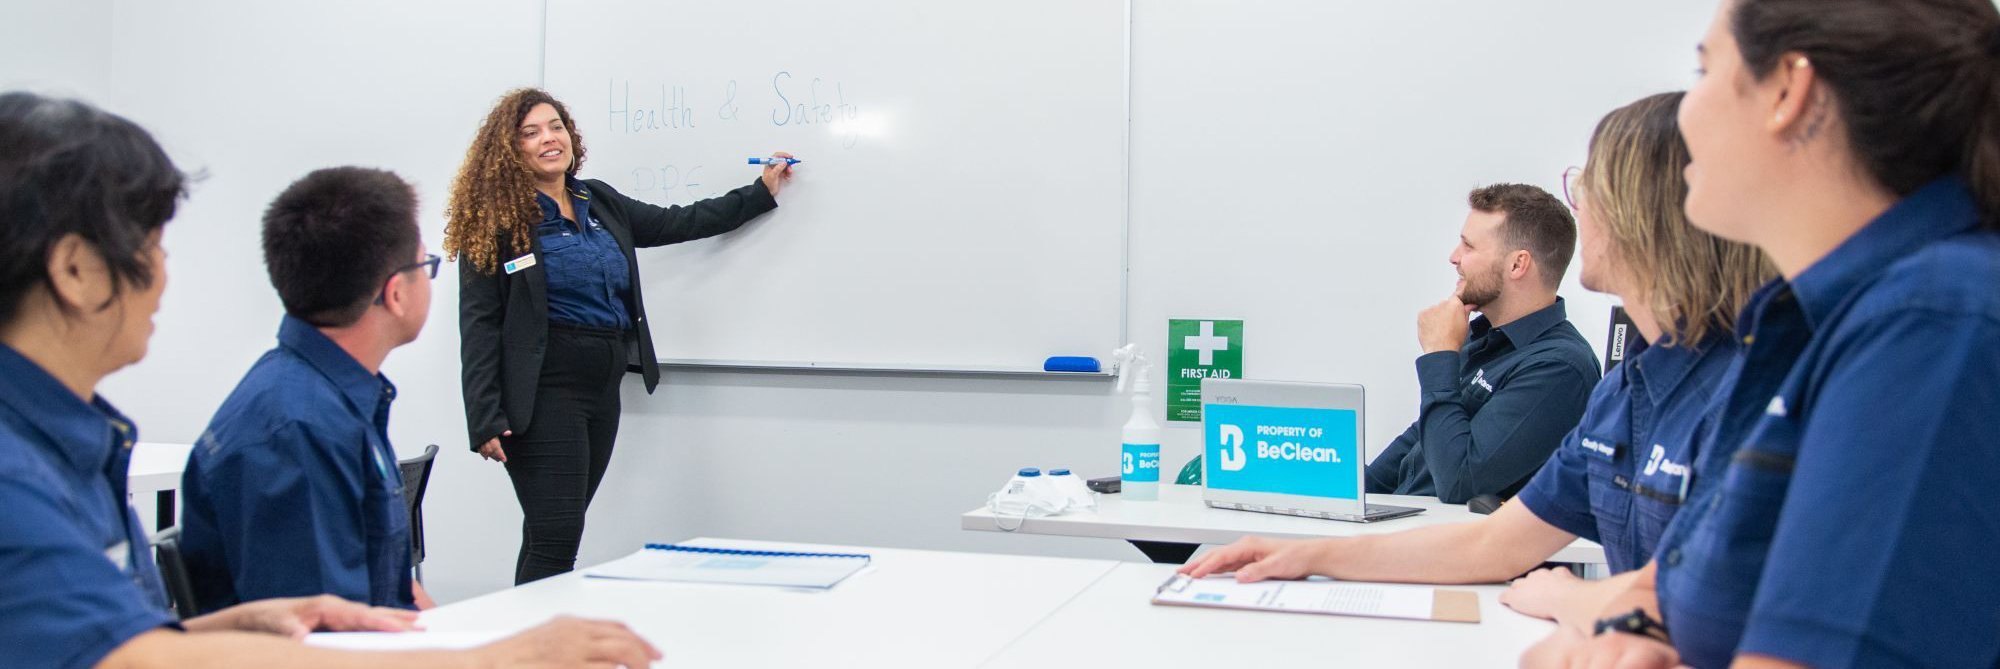 BeClean invests in staff training